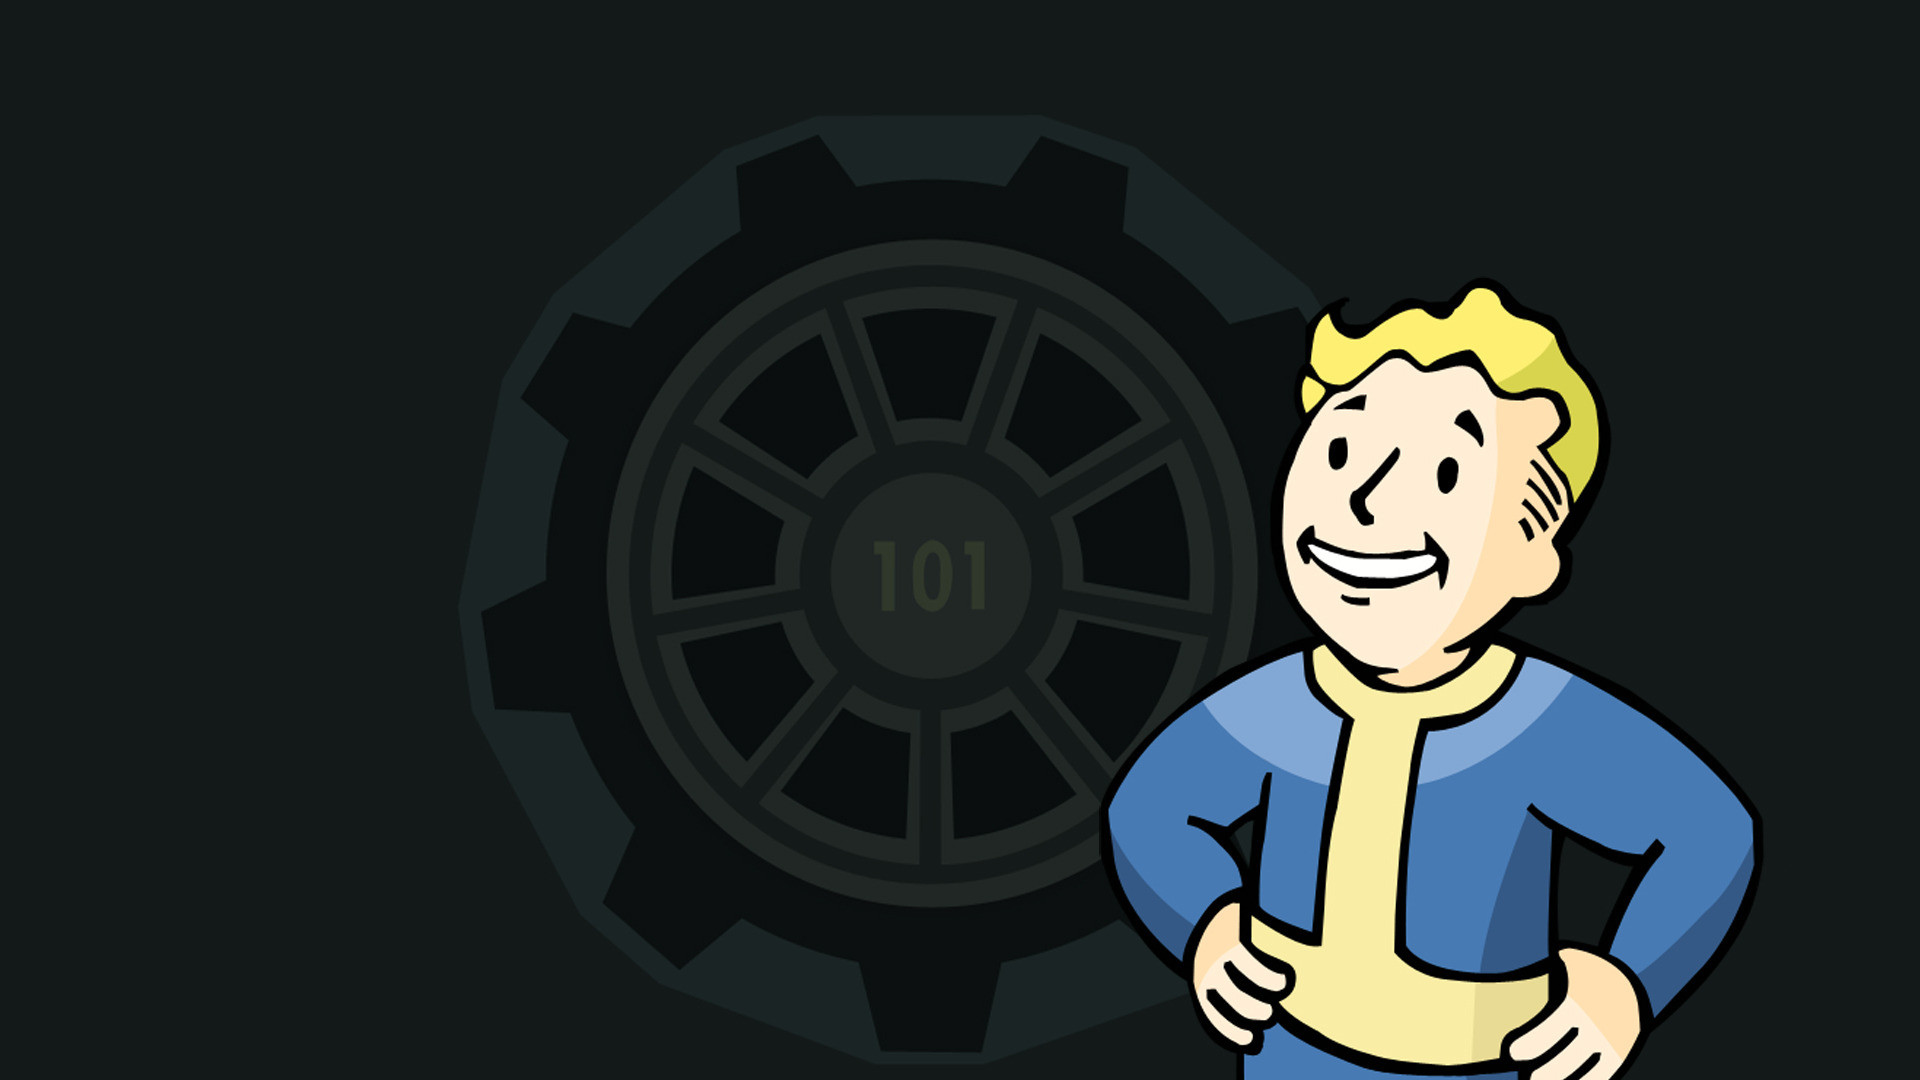 1920x1080 Vault Boy - Fallout wallpaper #5580